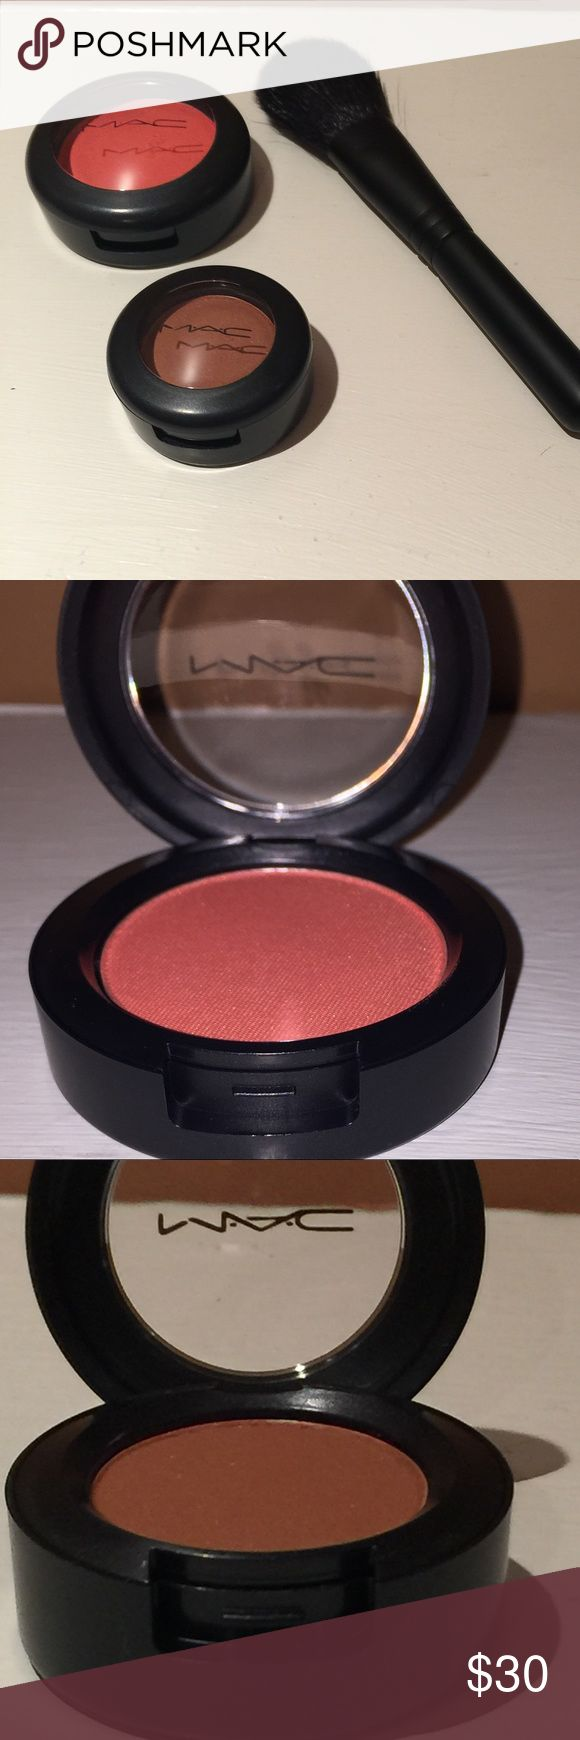 """NEW MAC Bundle: LE Blush, Eyeshadow & Blush Brush This Mac bundle includes three brand new items! Gorgeous Mac Limited edition 2.8 g blush in the shade """"This is Paradise"""" , a brand new Mac blush brush and a Mac velvet 1.5g eyeshadow in the shade """"Texture"""".  All items are 100% authentic and have never been swatched. MAC Cosmetics Makeup"""